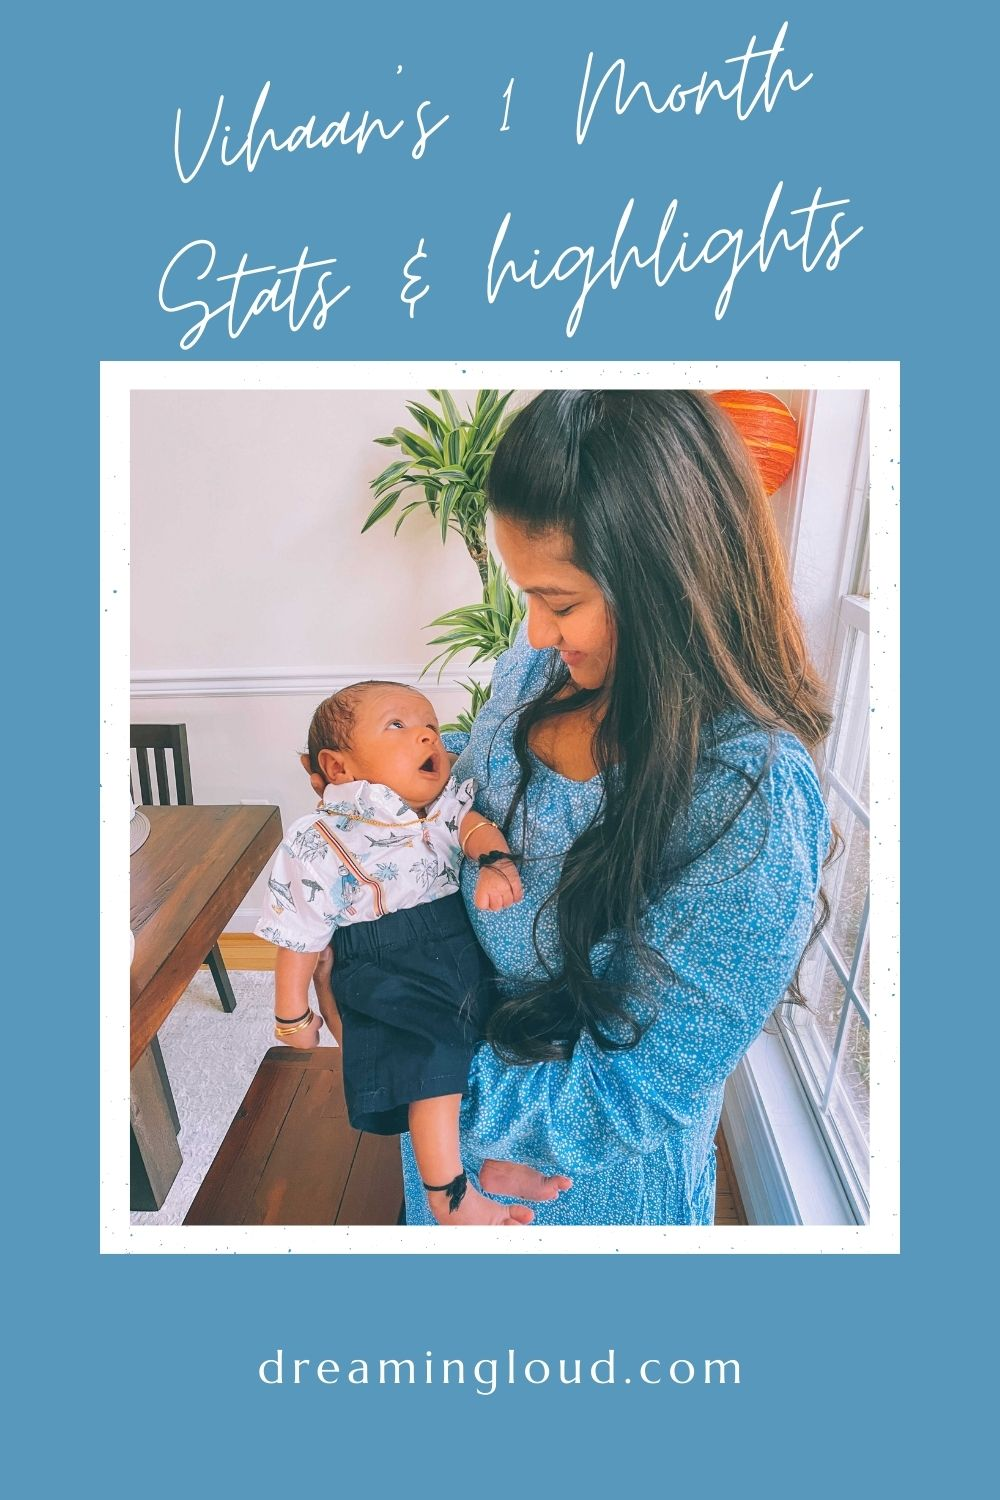 1 Month with our Baby Boy Vihaan- Stats, Highlights and Struggles | 1 Month Baby by popular Maryland motherhood blog, Dreaming Loud: Pinterest image of a mom holding her 1 month old baby boy.